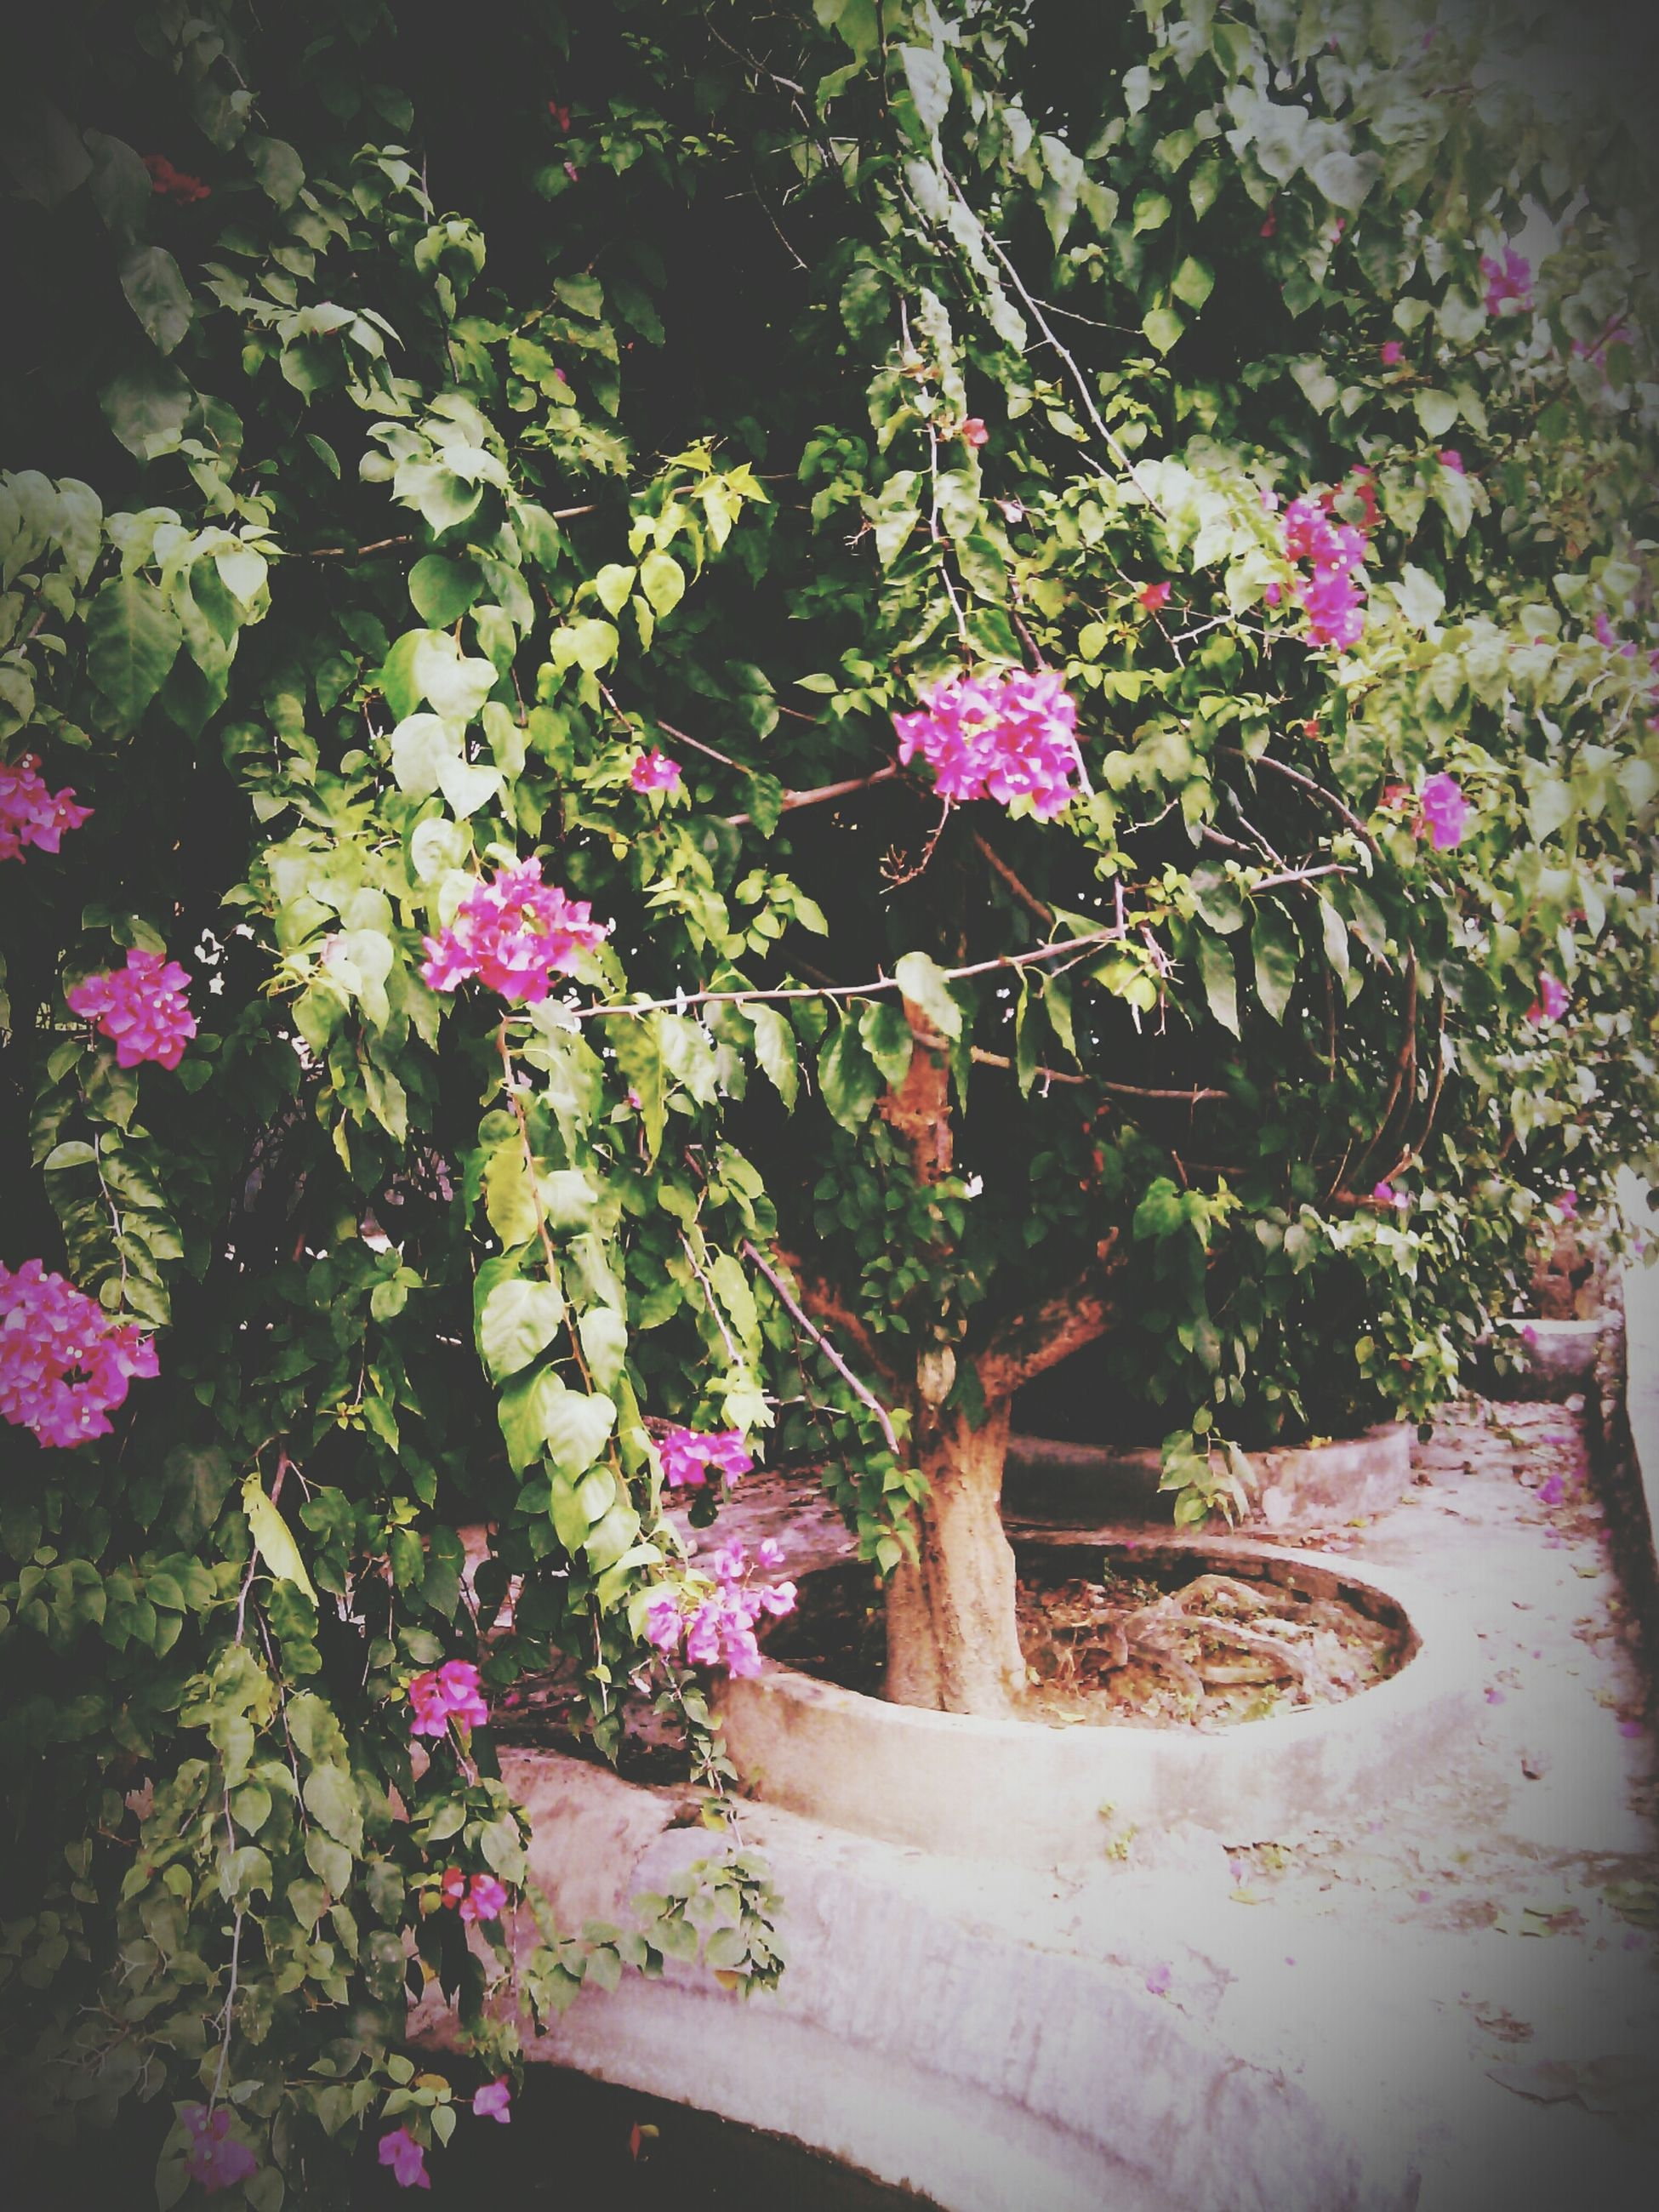 flower, growth, freshness, plant, fragility, pink color, beauty in nature, nature, petal, blooming, leaf, in bloom, blossom, purple, no people, tree, outdoors, day, potted plant, branch